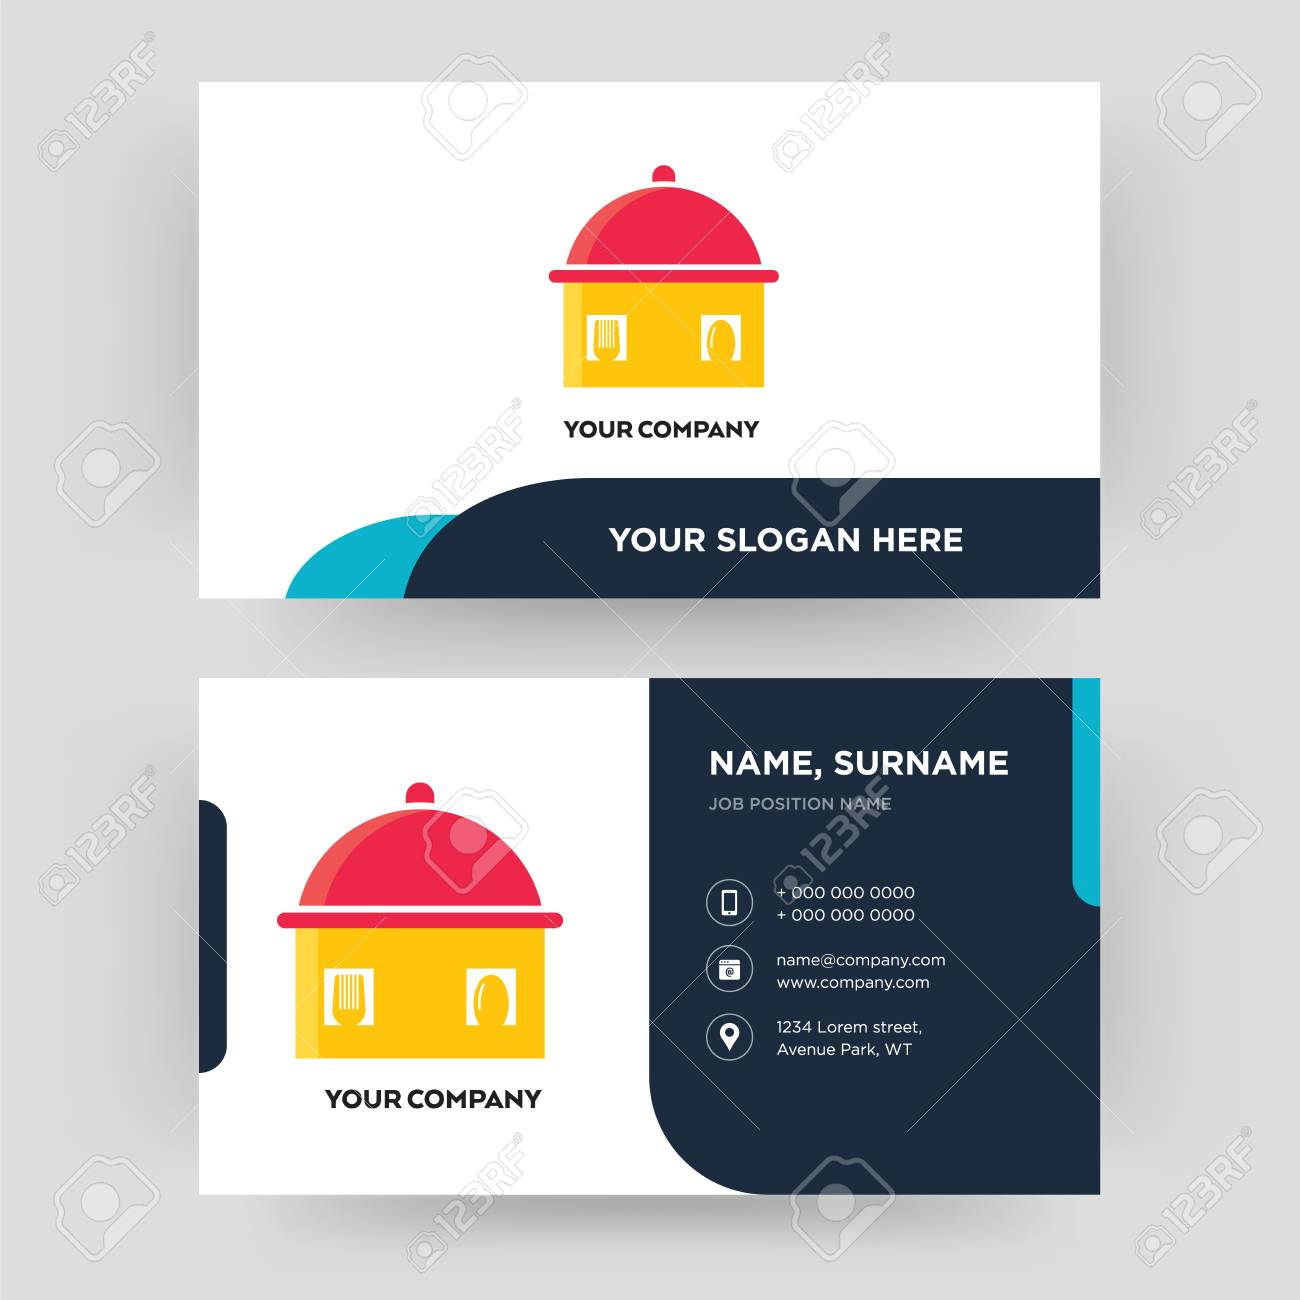 Homemade food business card design template visiting for your homemade food business card design template visiting for your company modern creative and colourmoves